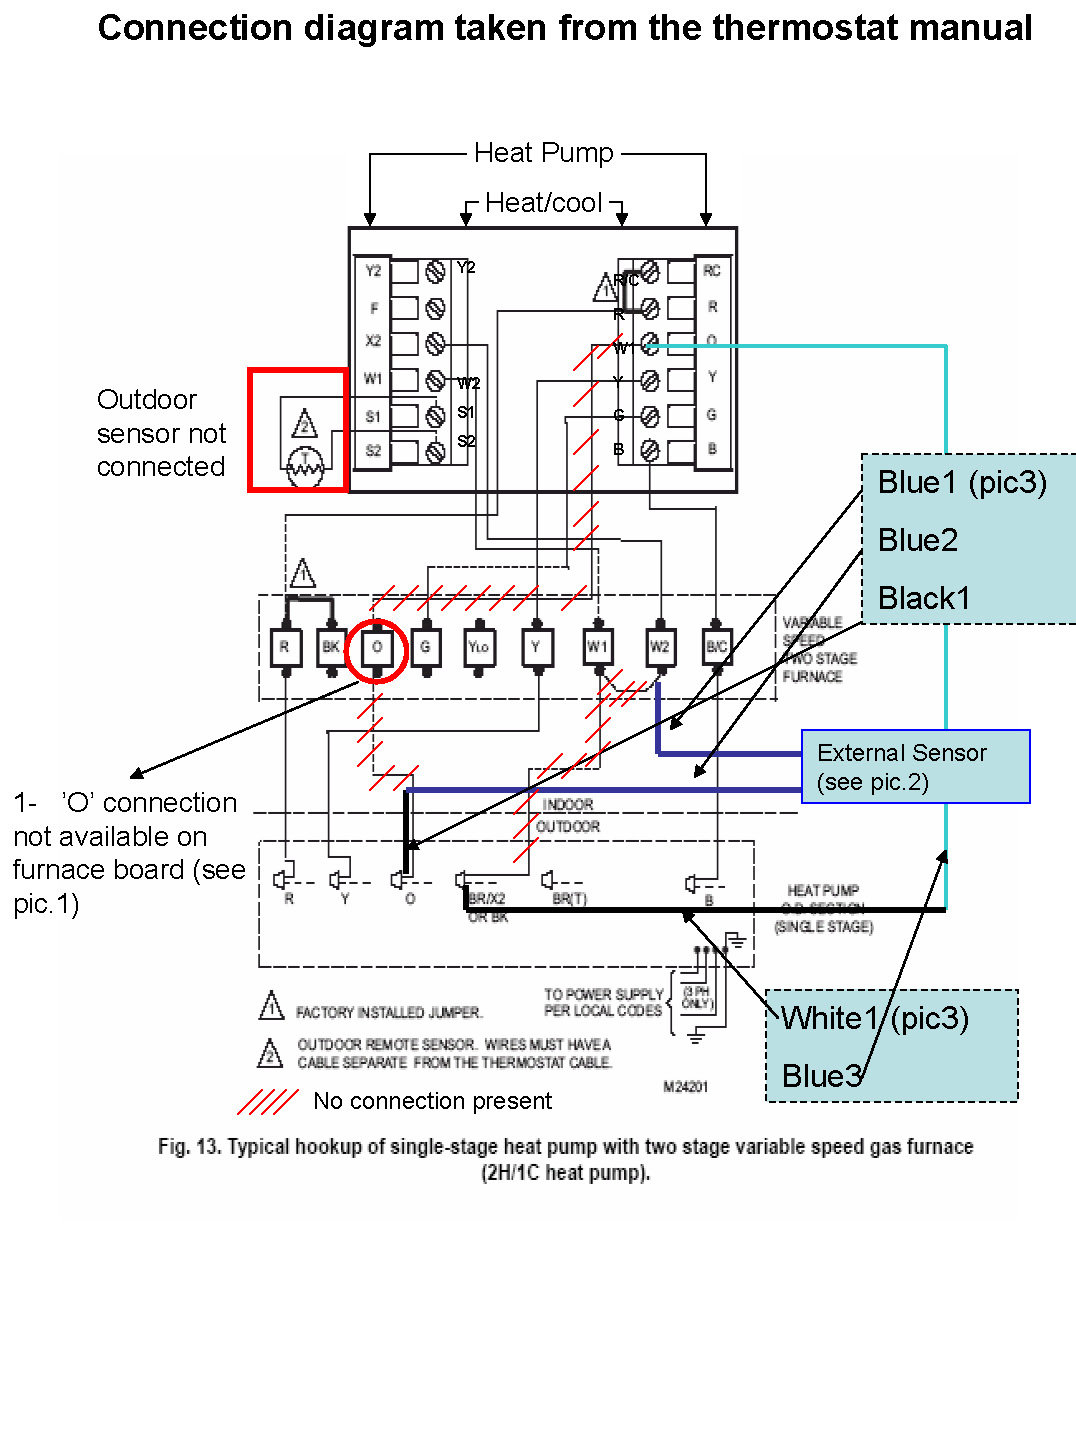 Trane Gas Furnace Wiring - Wiring Diagram - Wiring Diagram Dual Fuel Nest Outdoor Sensor